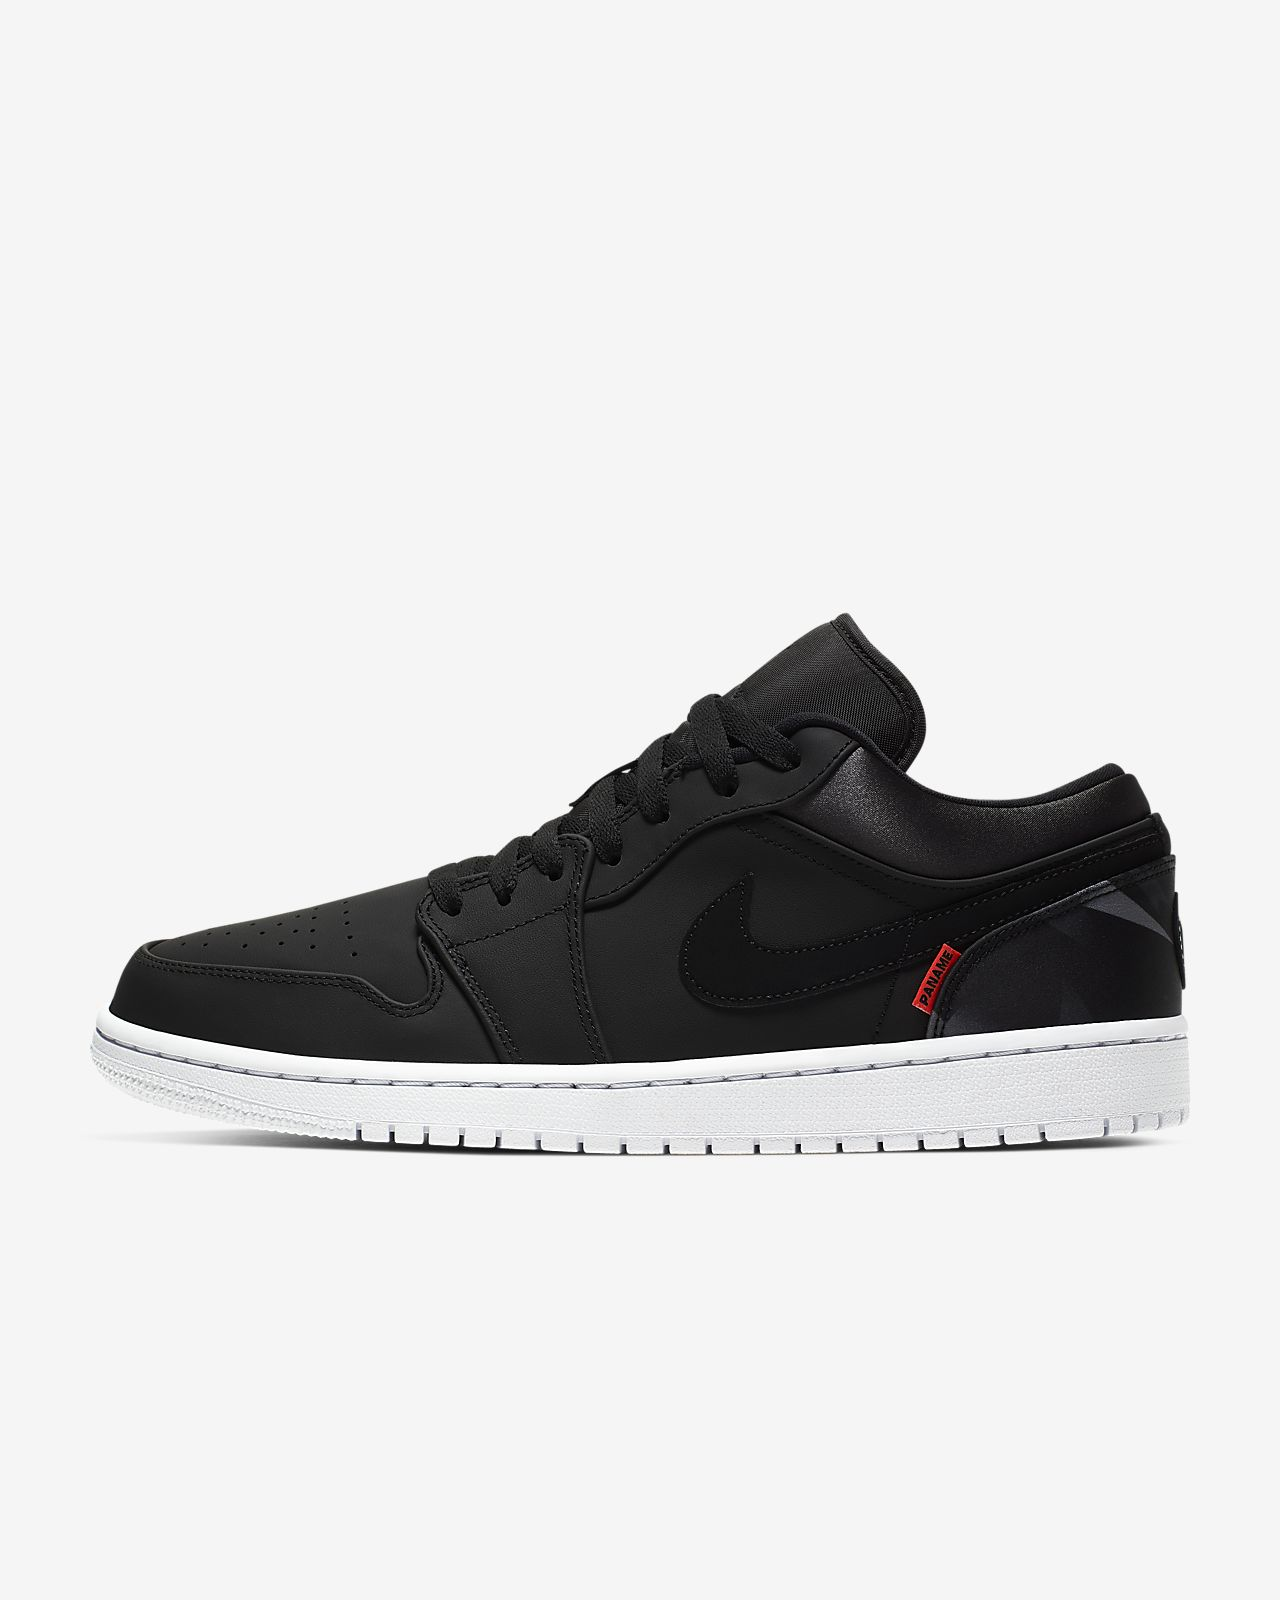 Chaussure Air Jordan 1 Low Paris Saint-Germain pour Homme